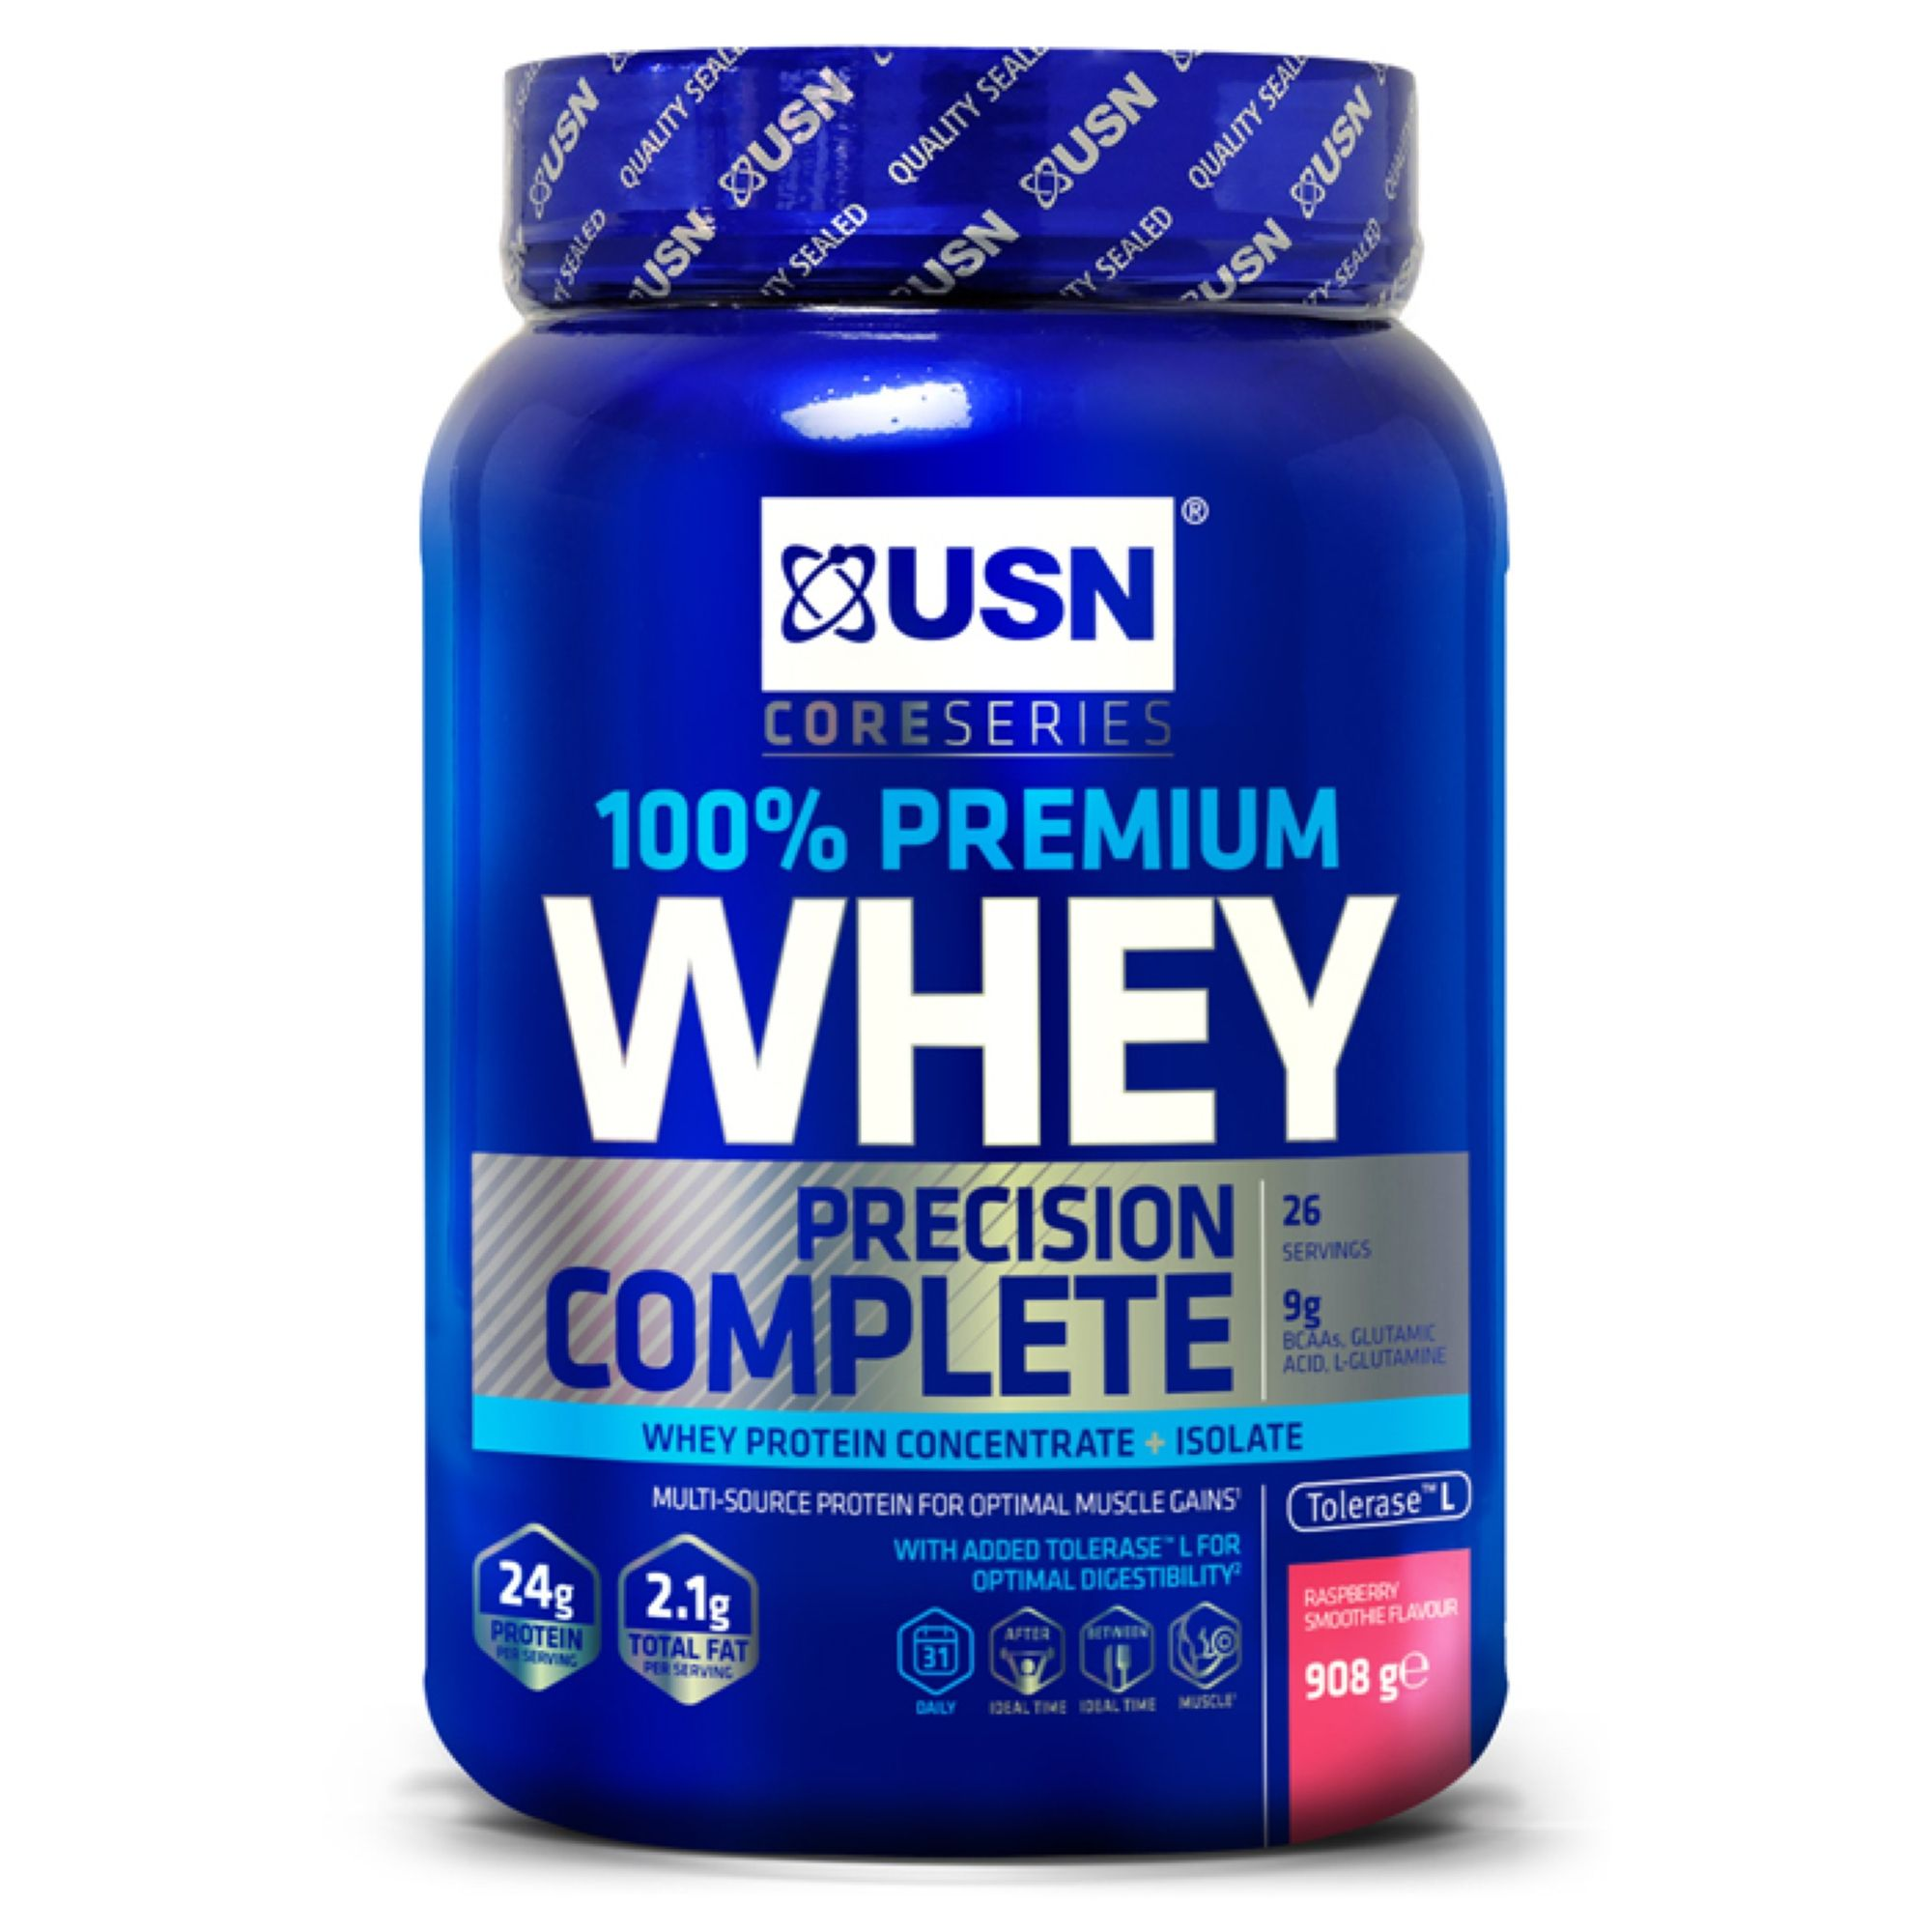 USN 100 Premium Whey USN (Ultimate Sports Nutrition